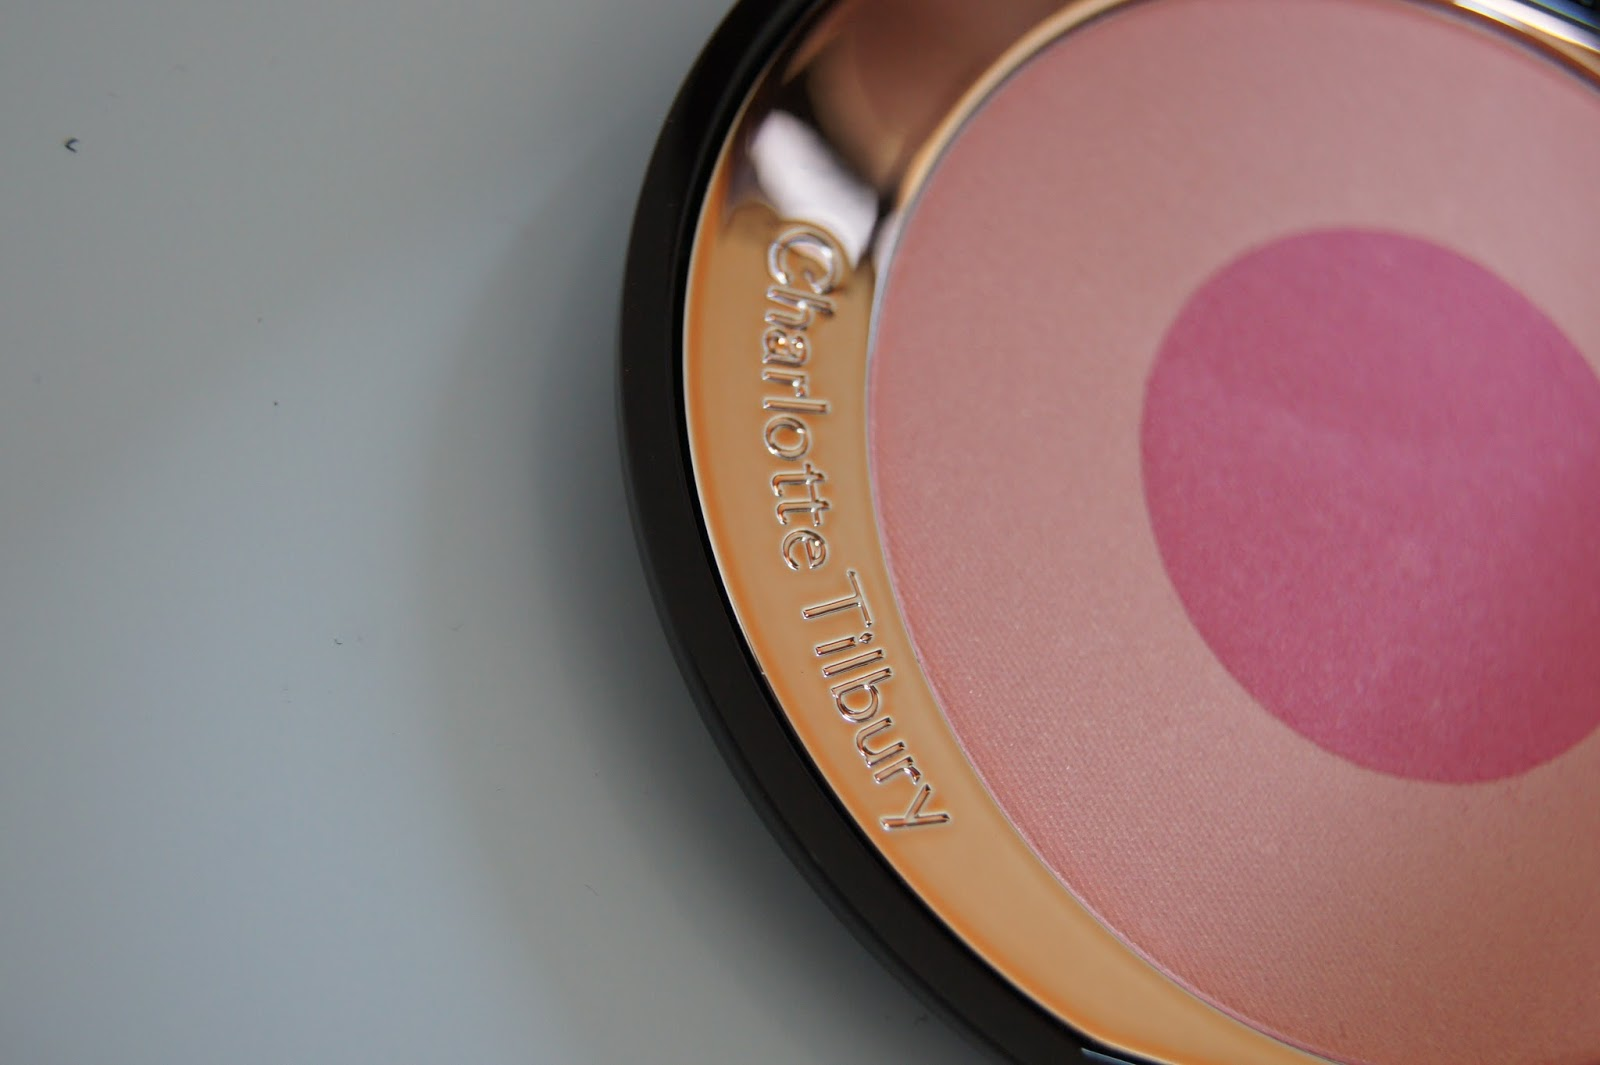 6 Shades Of Love - Love Is The Drug by Charlotte Tilbury #11